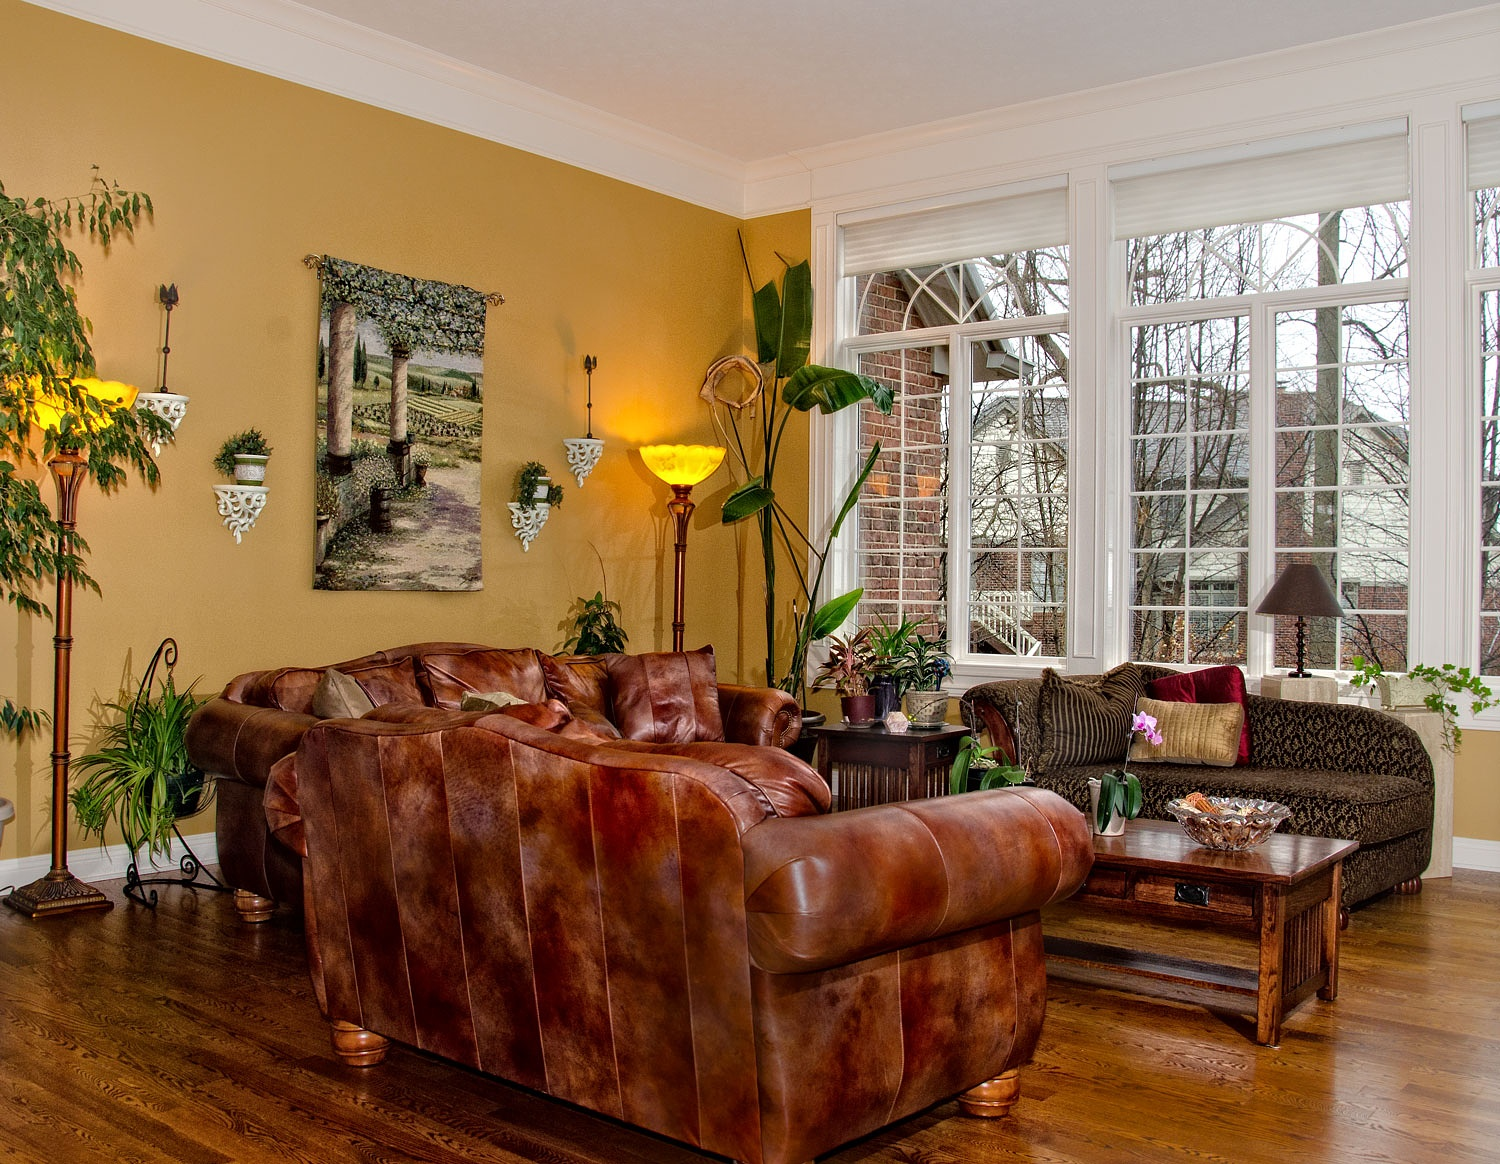 HDR Real Estate by Ted Templeman